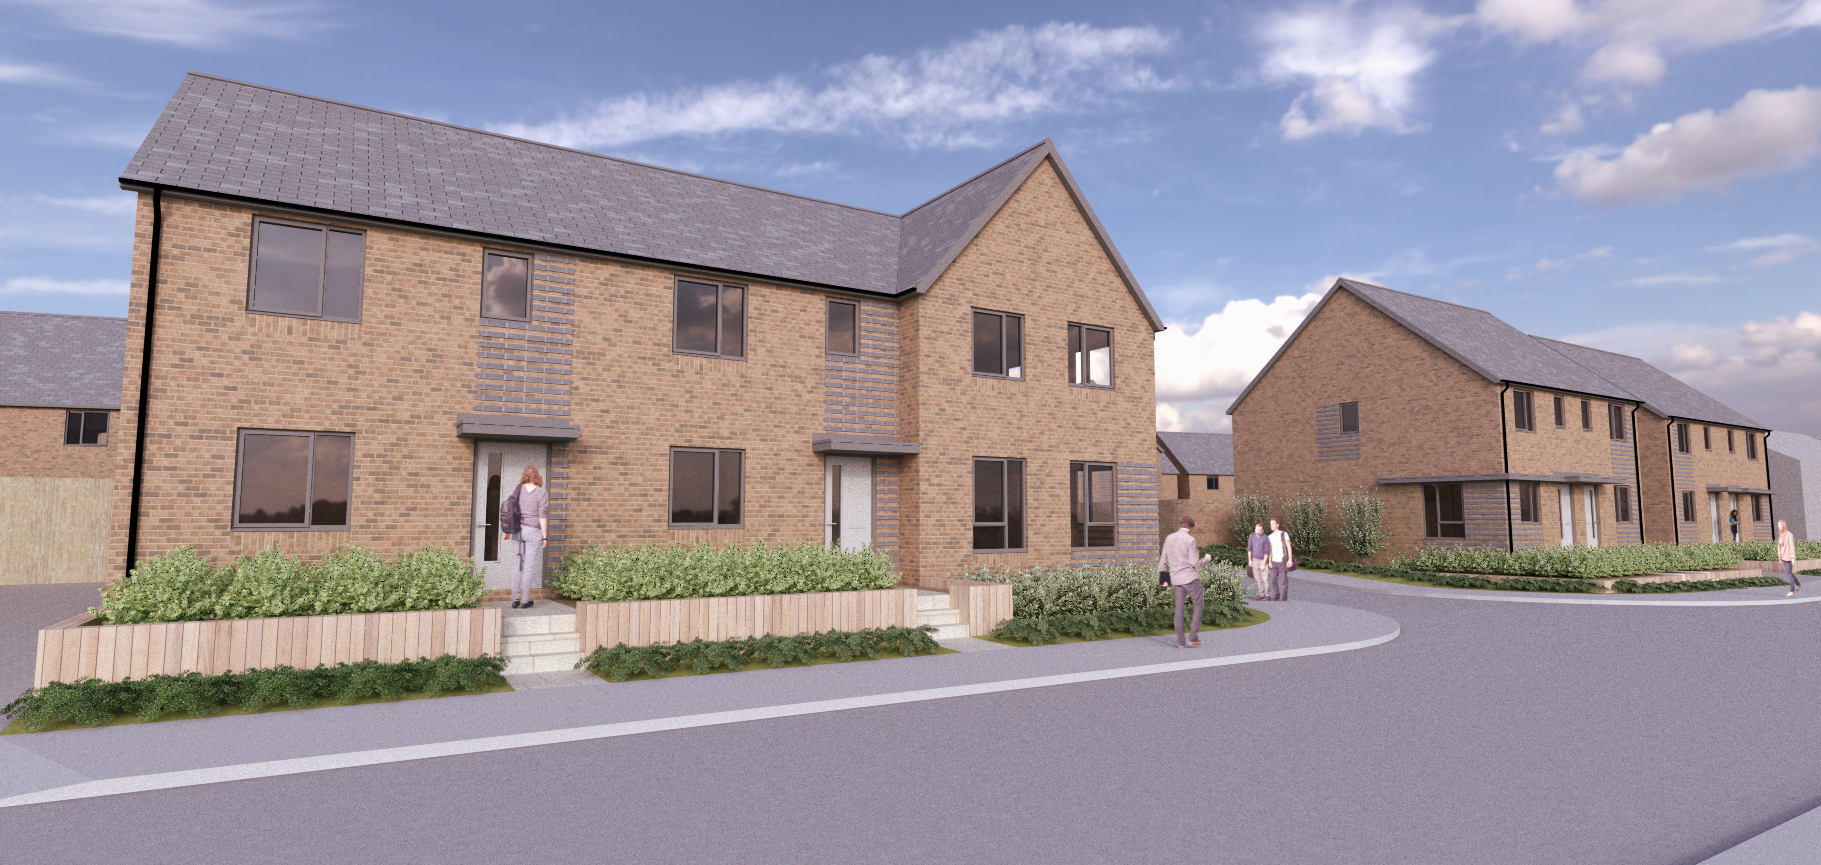 Planning permission granted for 47 affordable homes on former Magnadata site in Boston